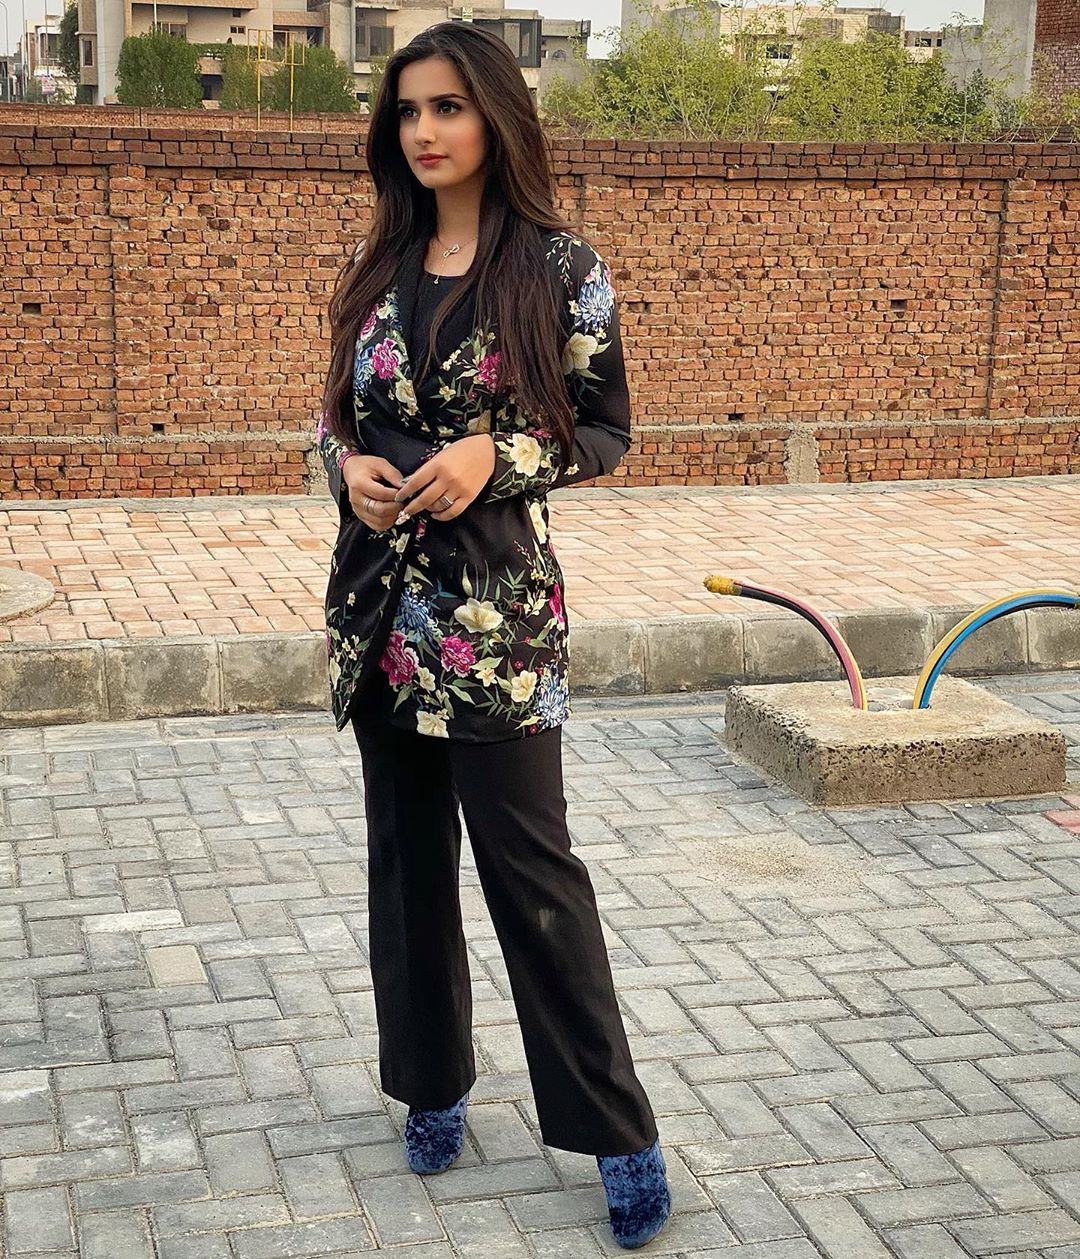 Alishbah Anjum jacket, jeans matching outfit, beautiful girls pictures